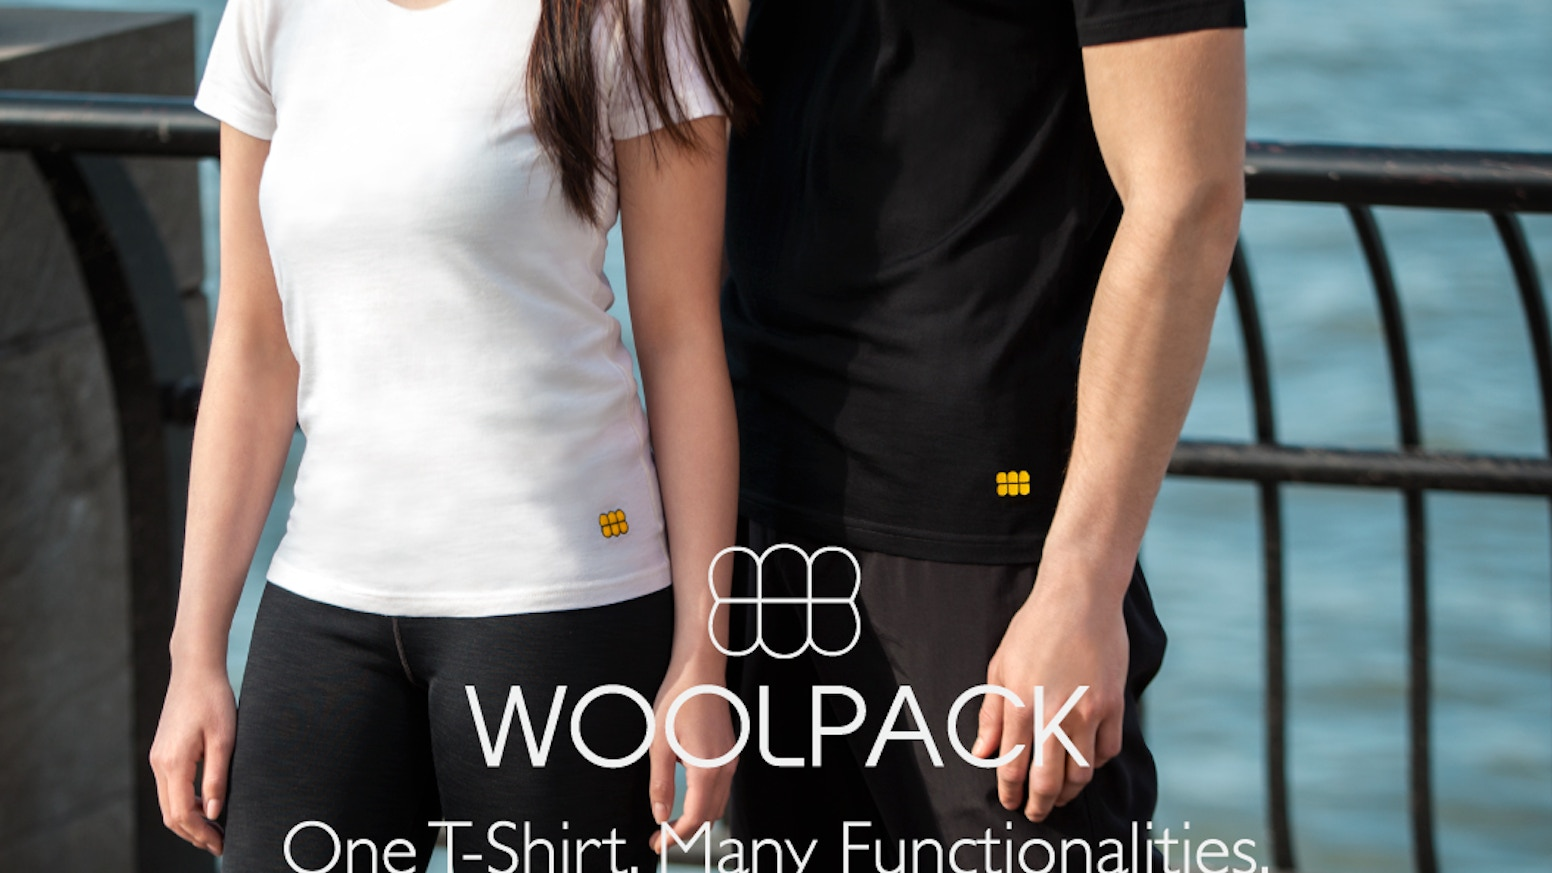 A 100% Merino Wool T-Shirt made to withstand all of your daily routines with comfort and functionality that outperforms.